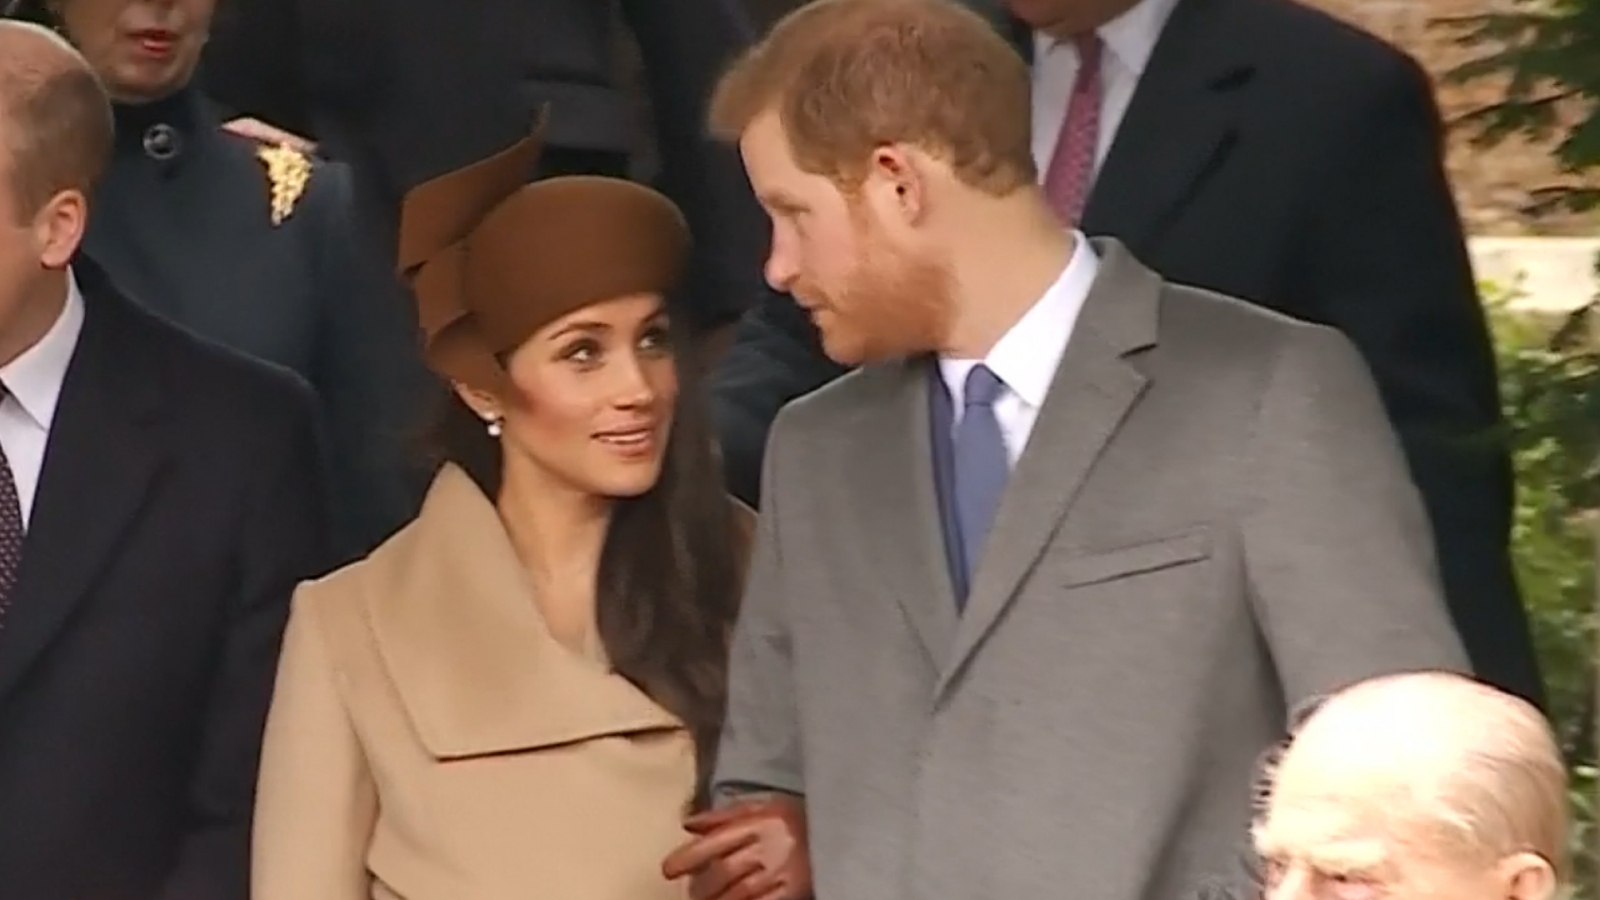 meghan-markle-and-prince-harry-greeted-well-wishers-after-royal-familys-church-service-at-sandringham